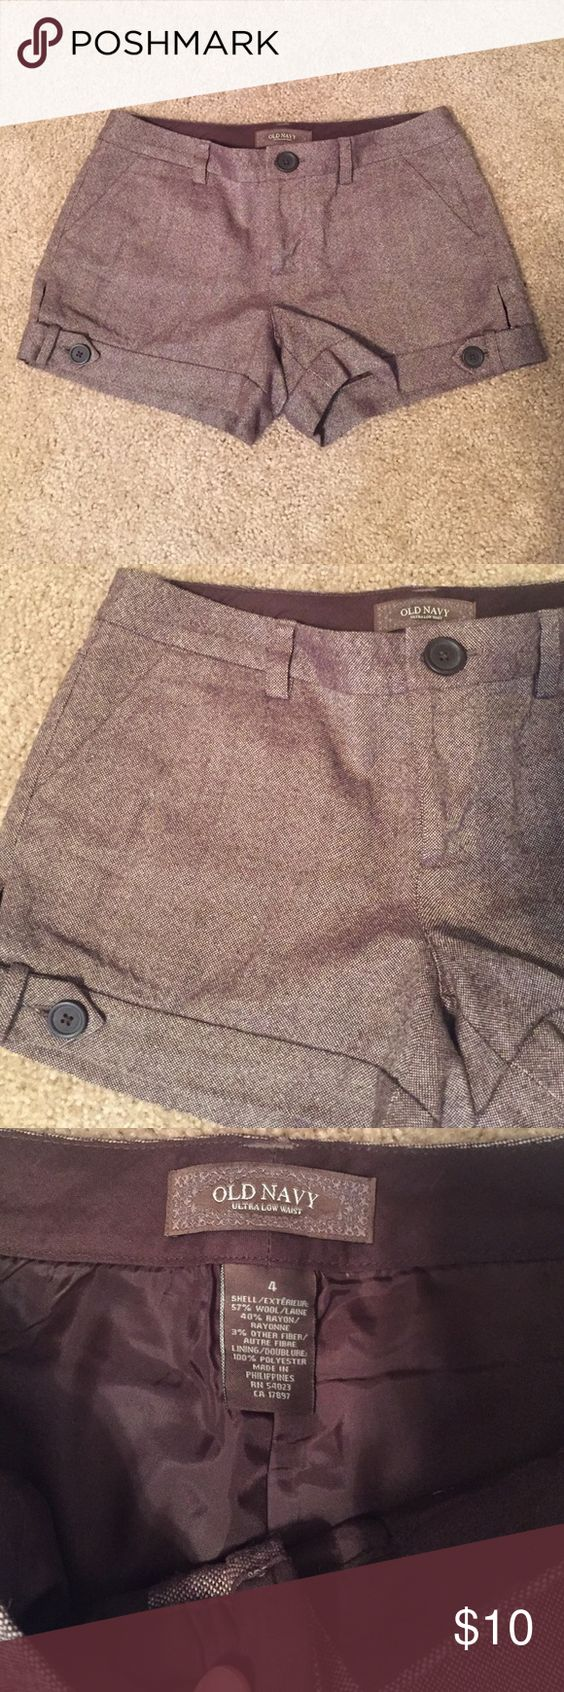 *Last chance* Old Navy Shorts Brown Old Navy shorts. Super cute. Size 4. Can be worn dressy or casual. Worn once. In great shape. Old Navy Shorts